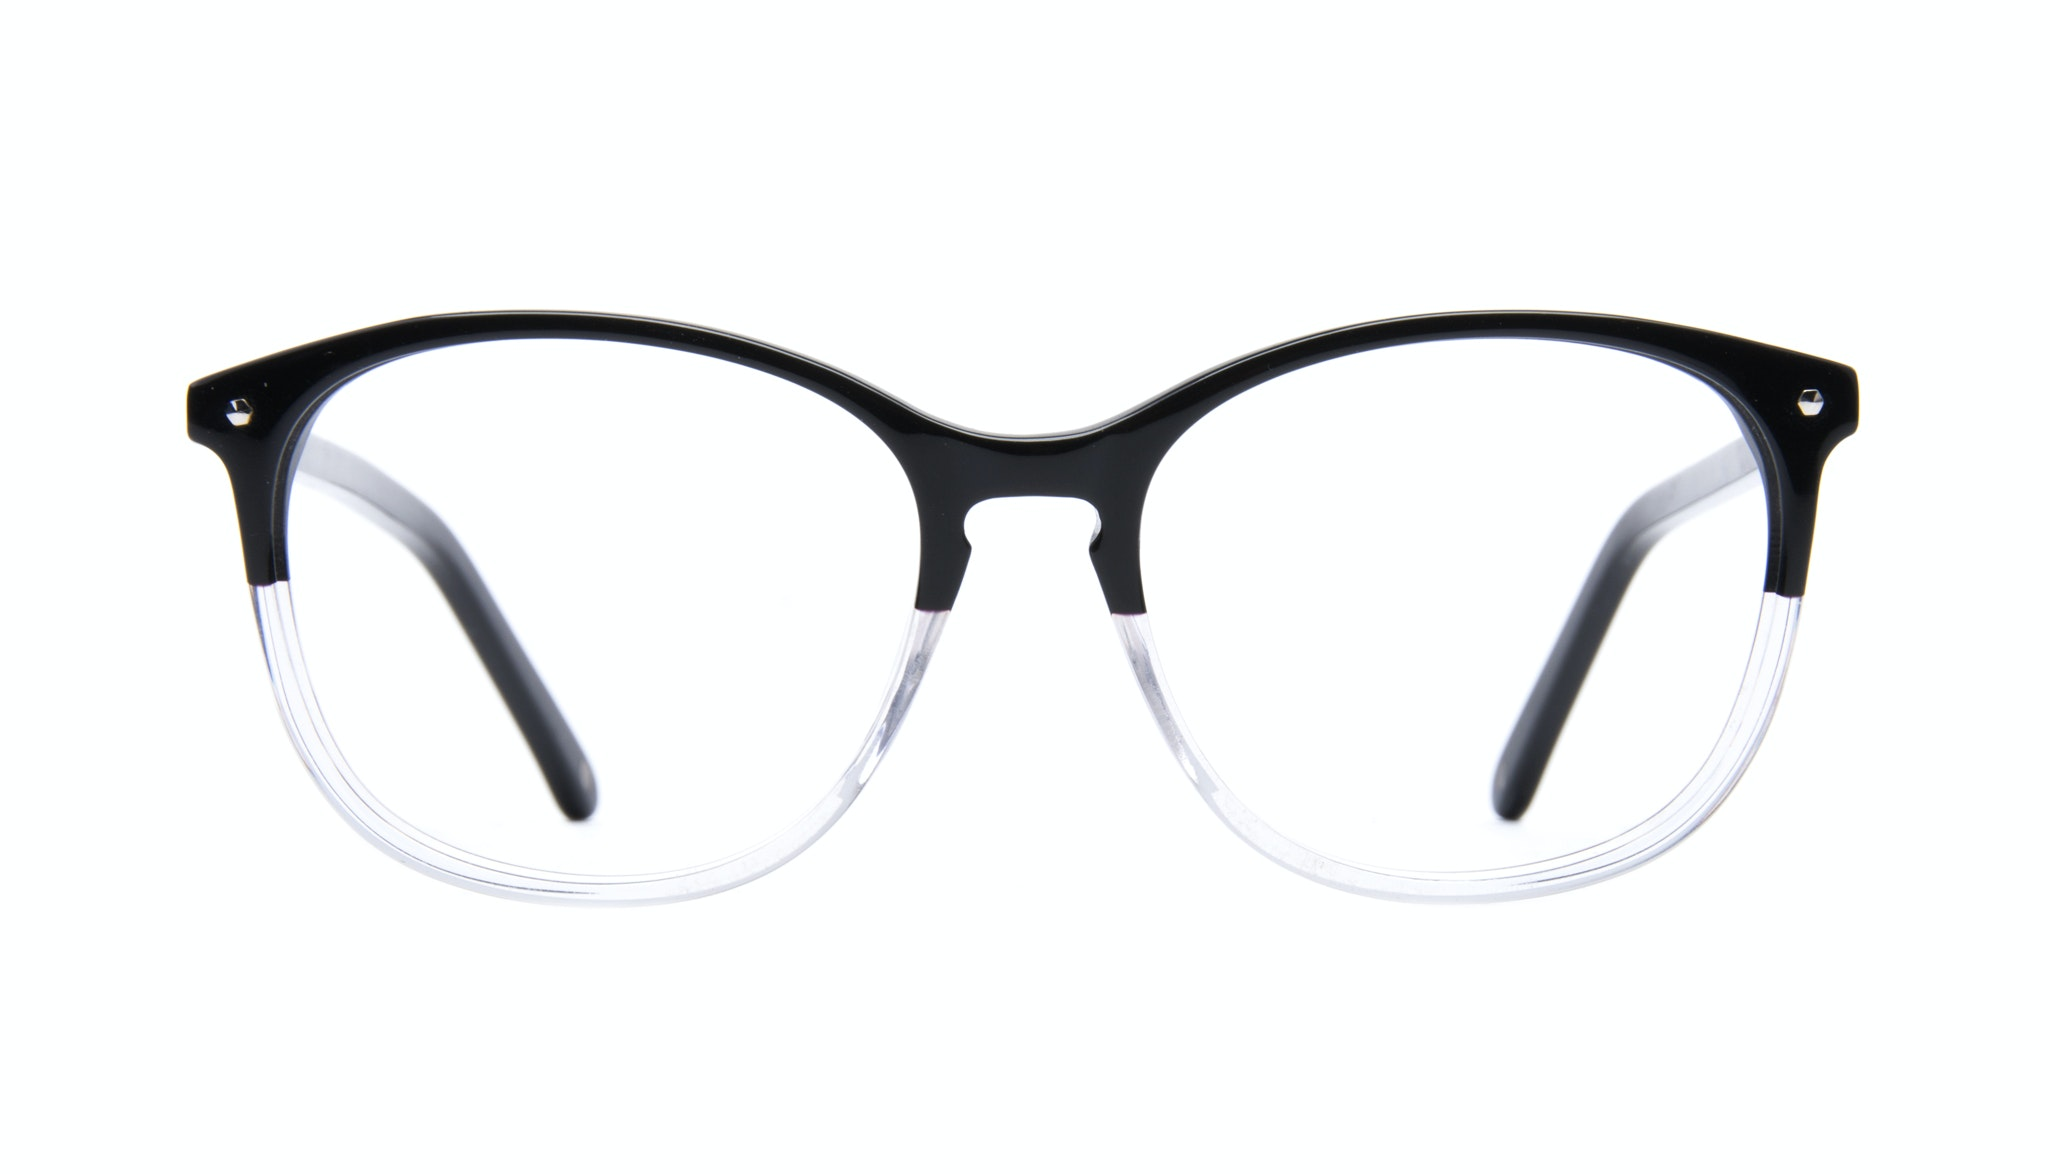 Affordable Fashion Glasses Rectangle Square Round Eyeglasses Women Nadine Two Tone Black